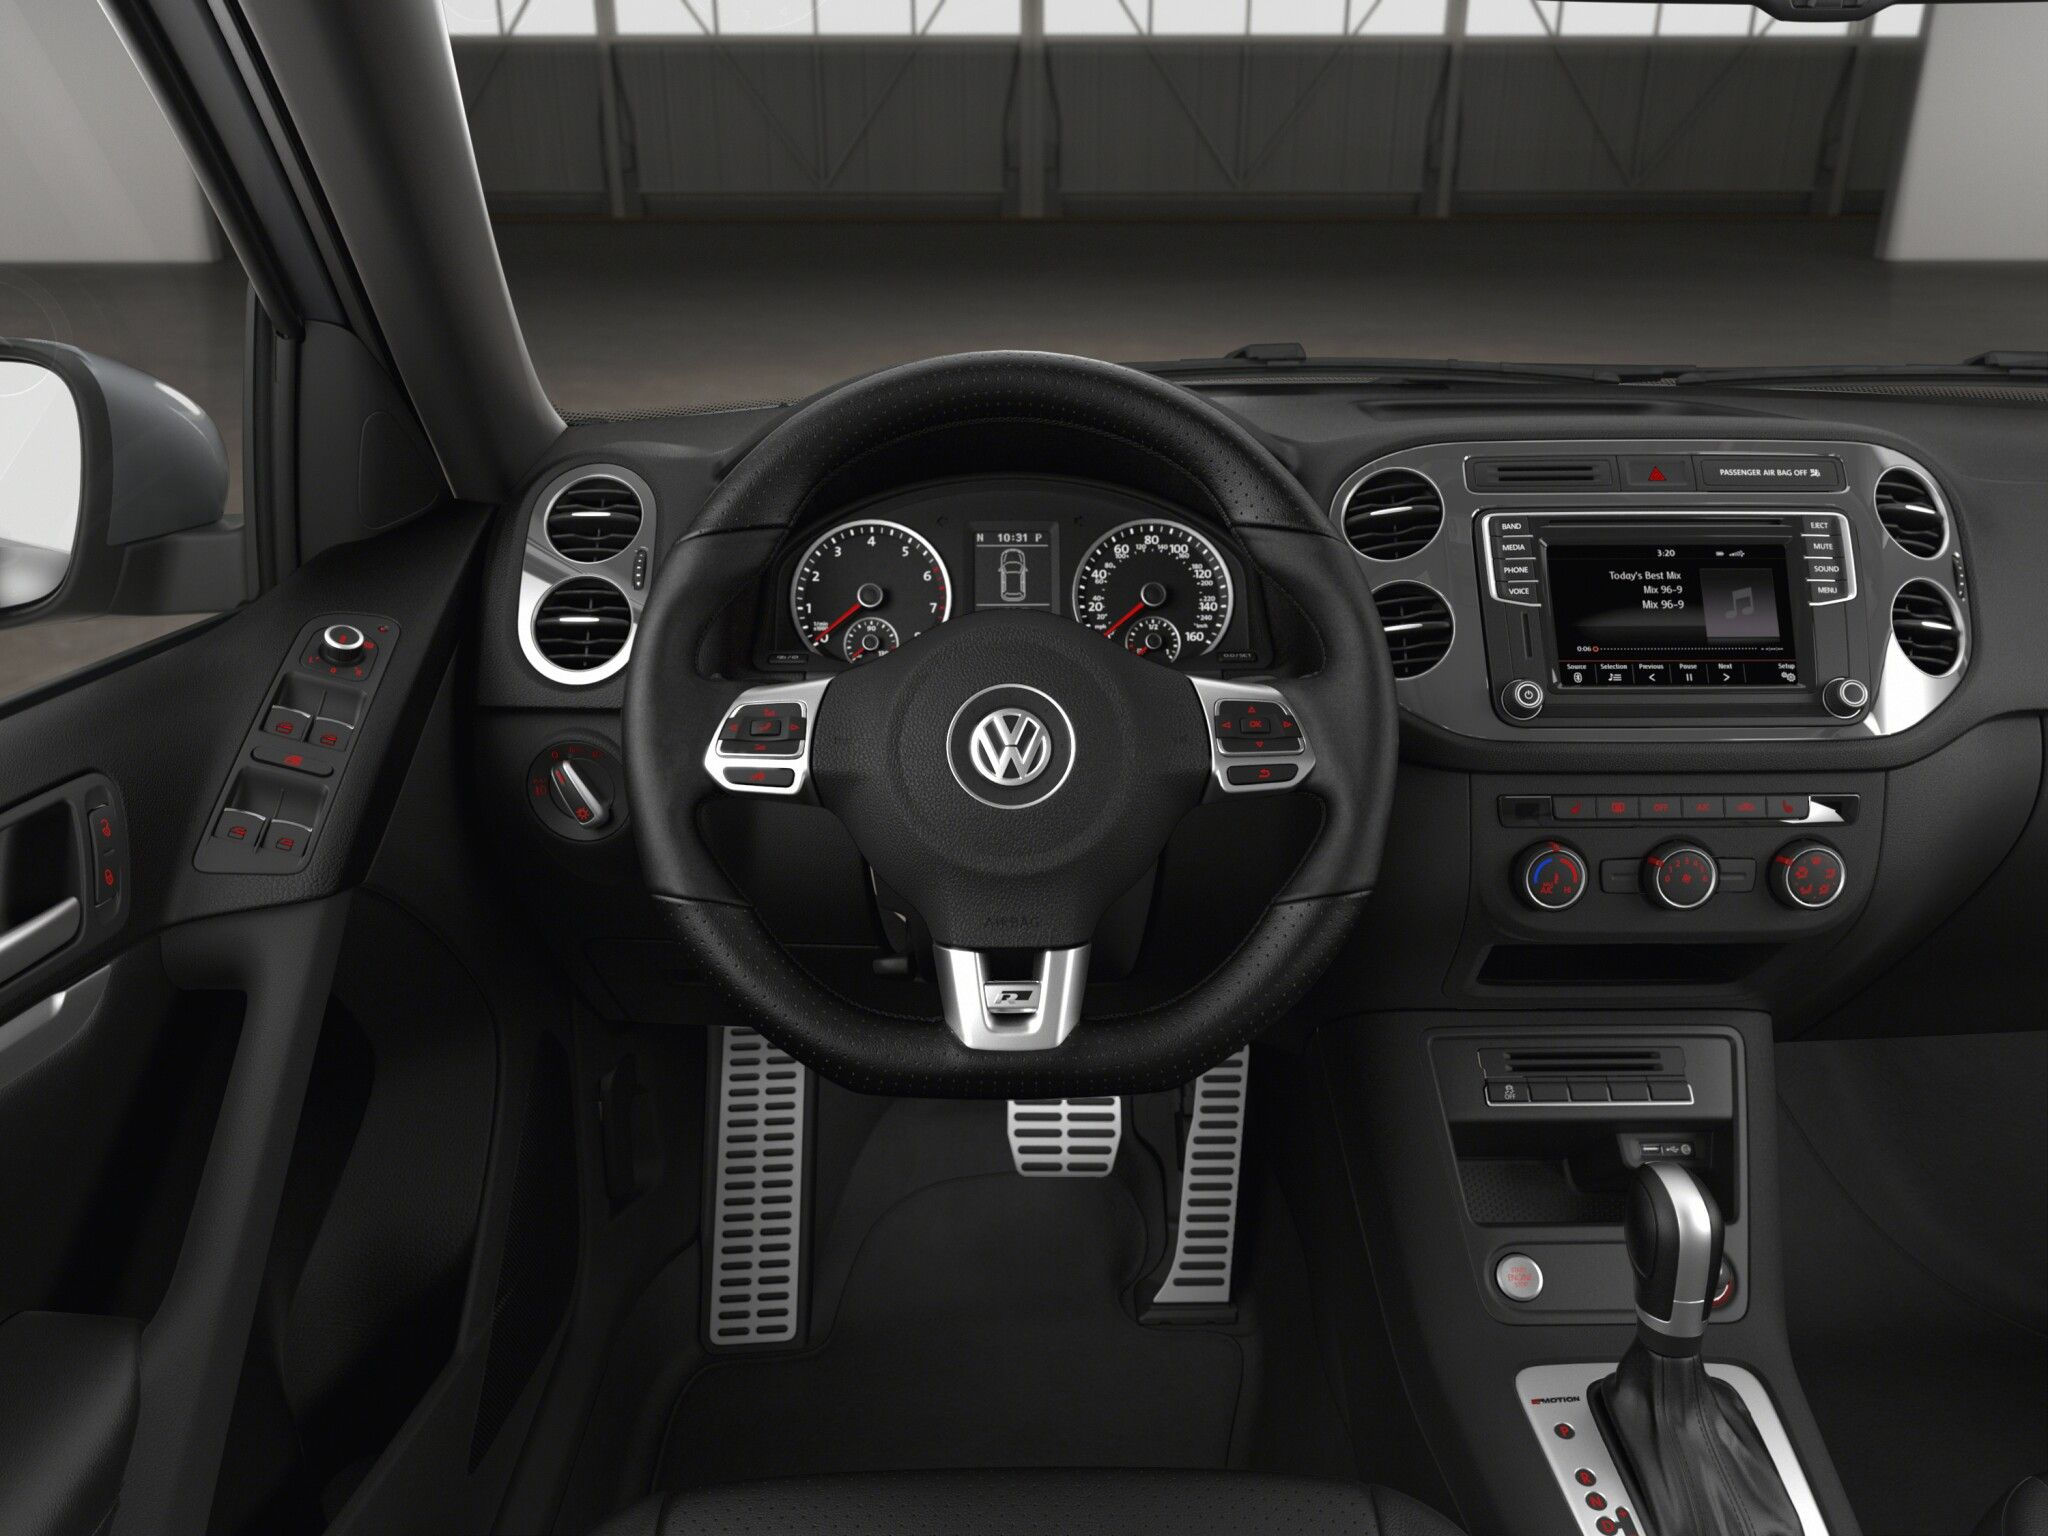 2016 Vw Tiguan R Line Upgrade Larger Infotainment Screen